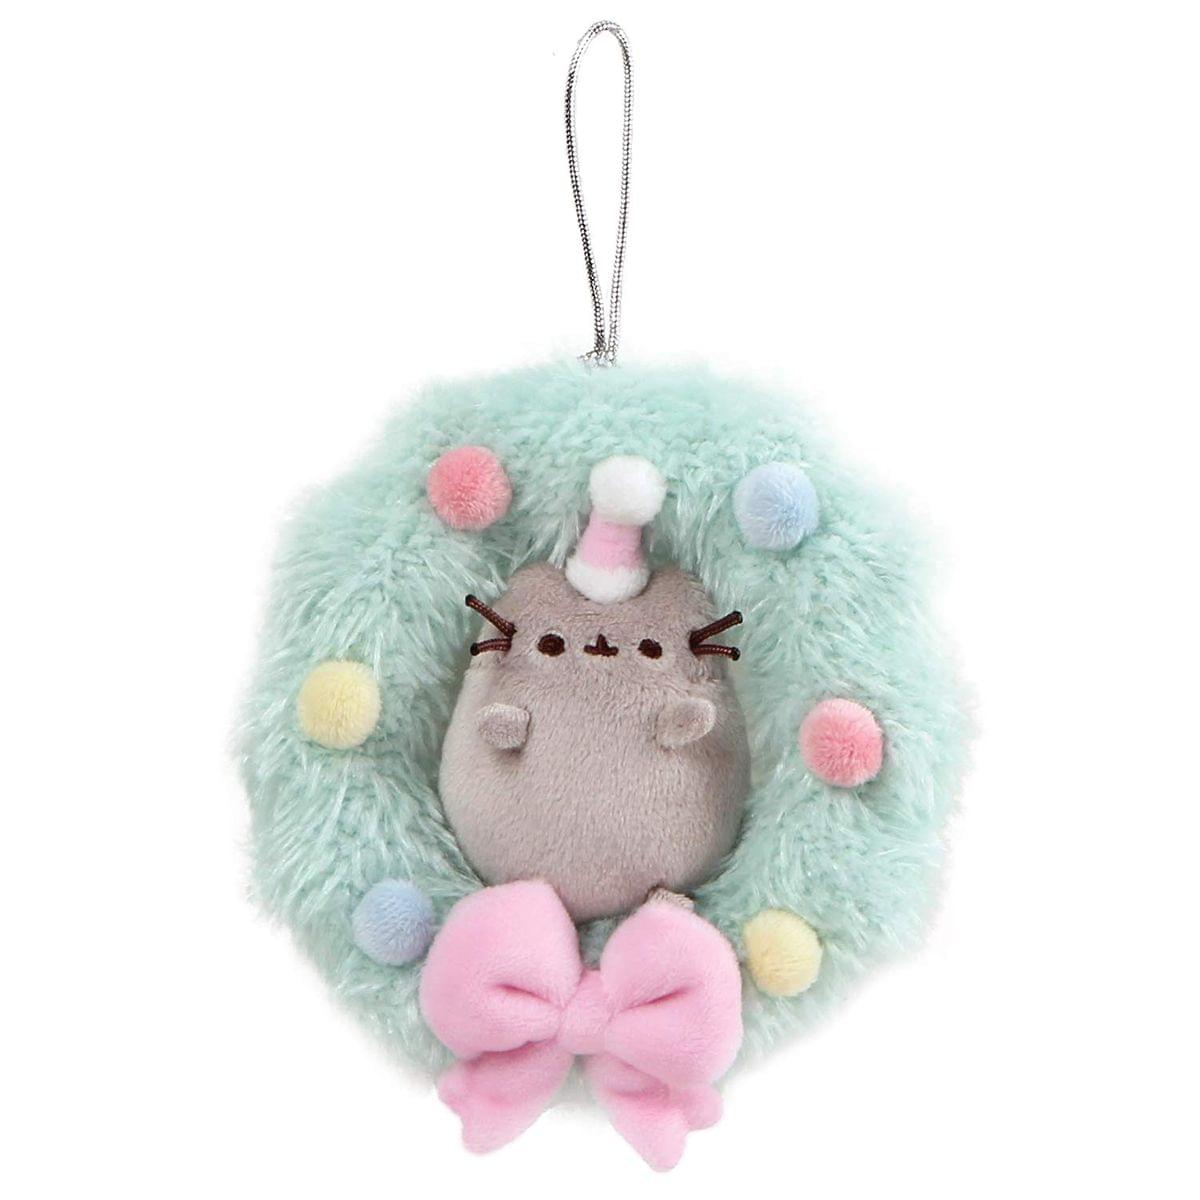 Pusheen 4.5-Inch Plush Christmas Wreath Ornament